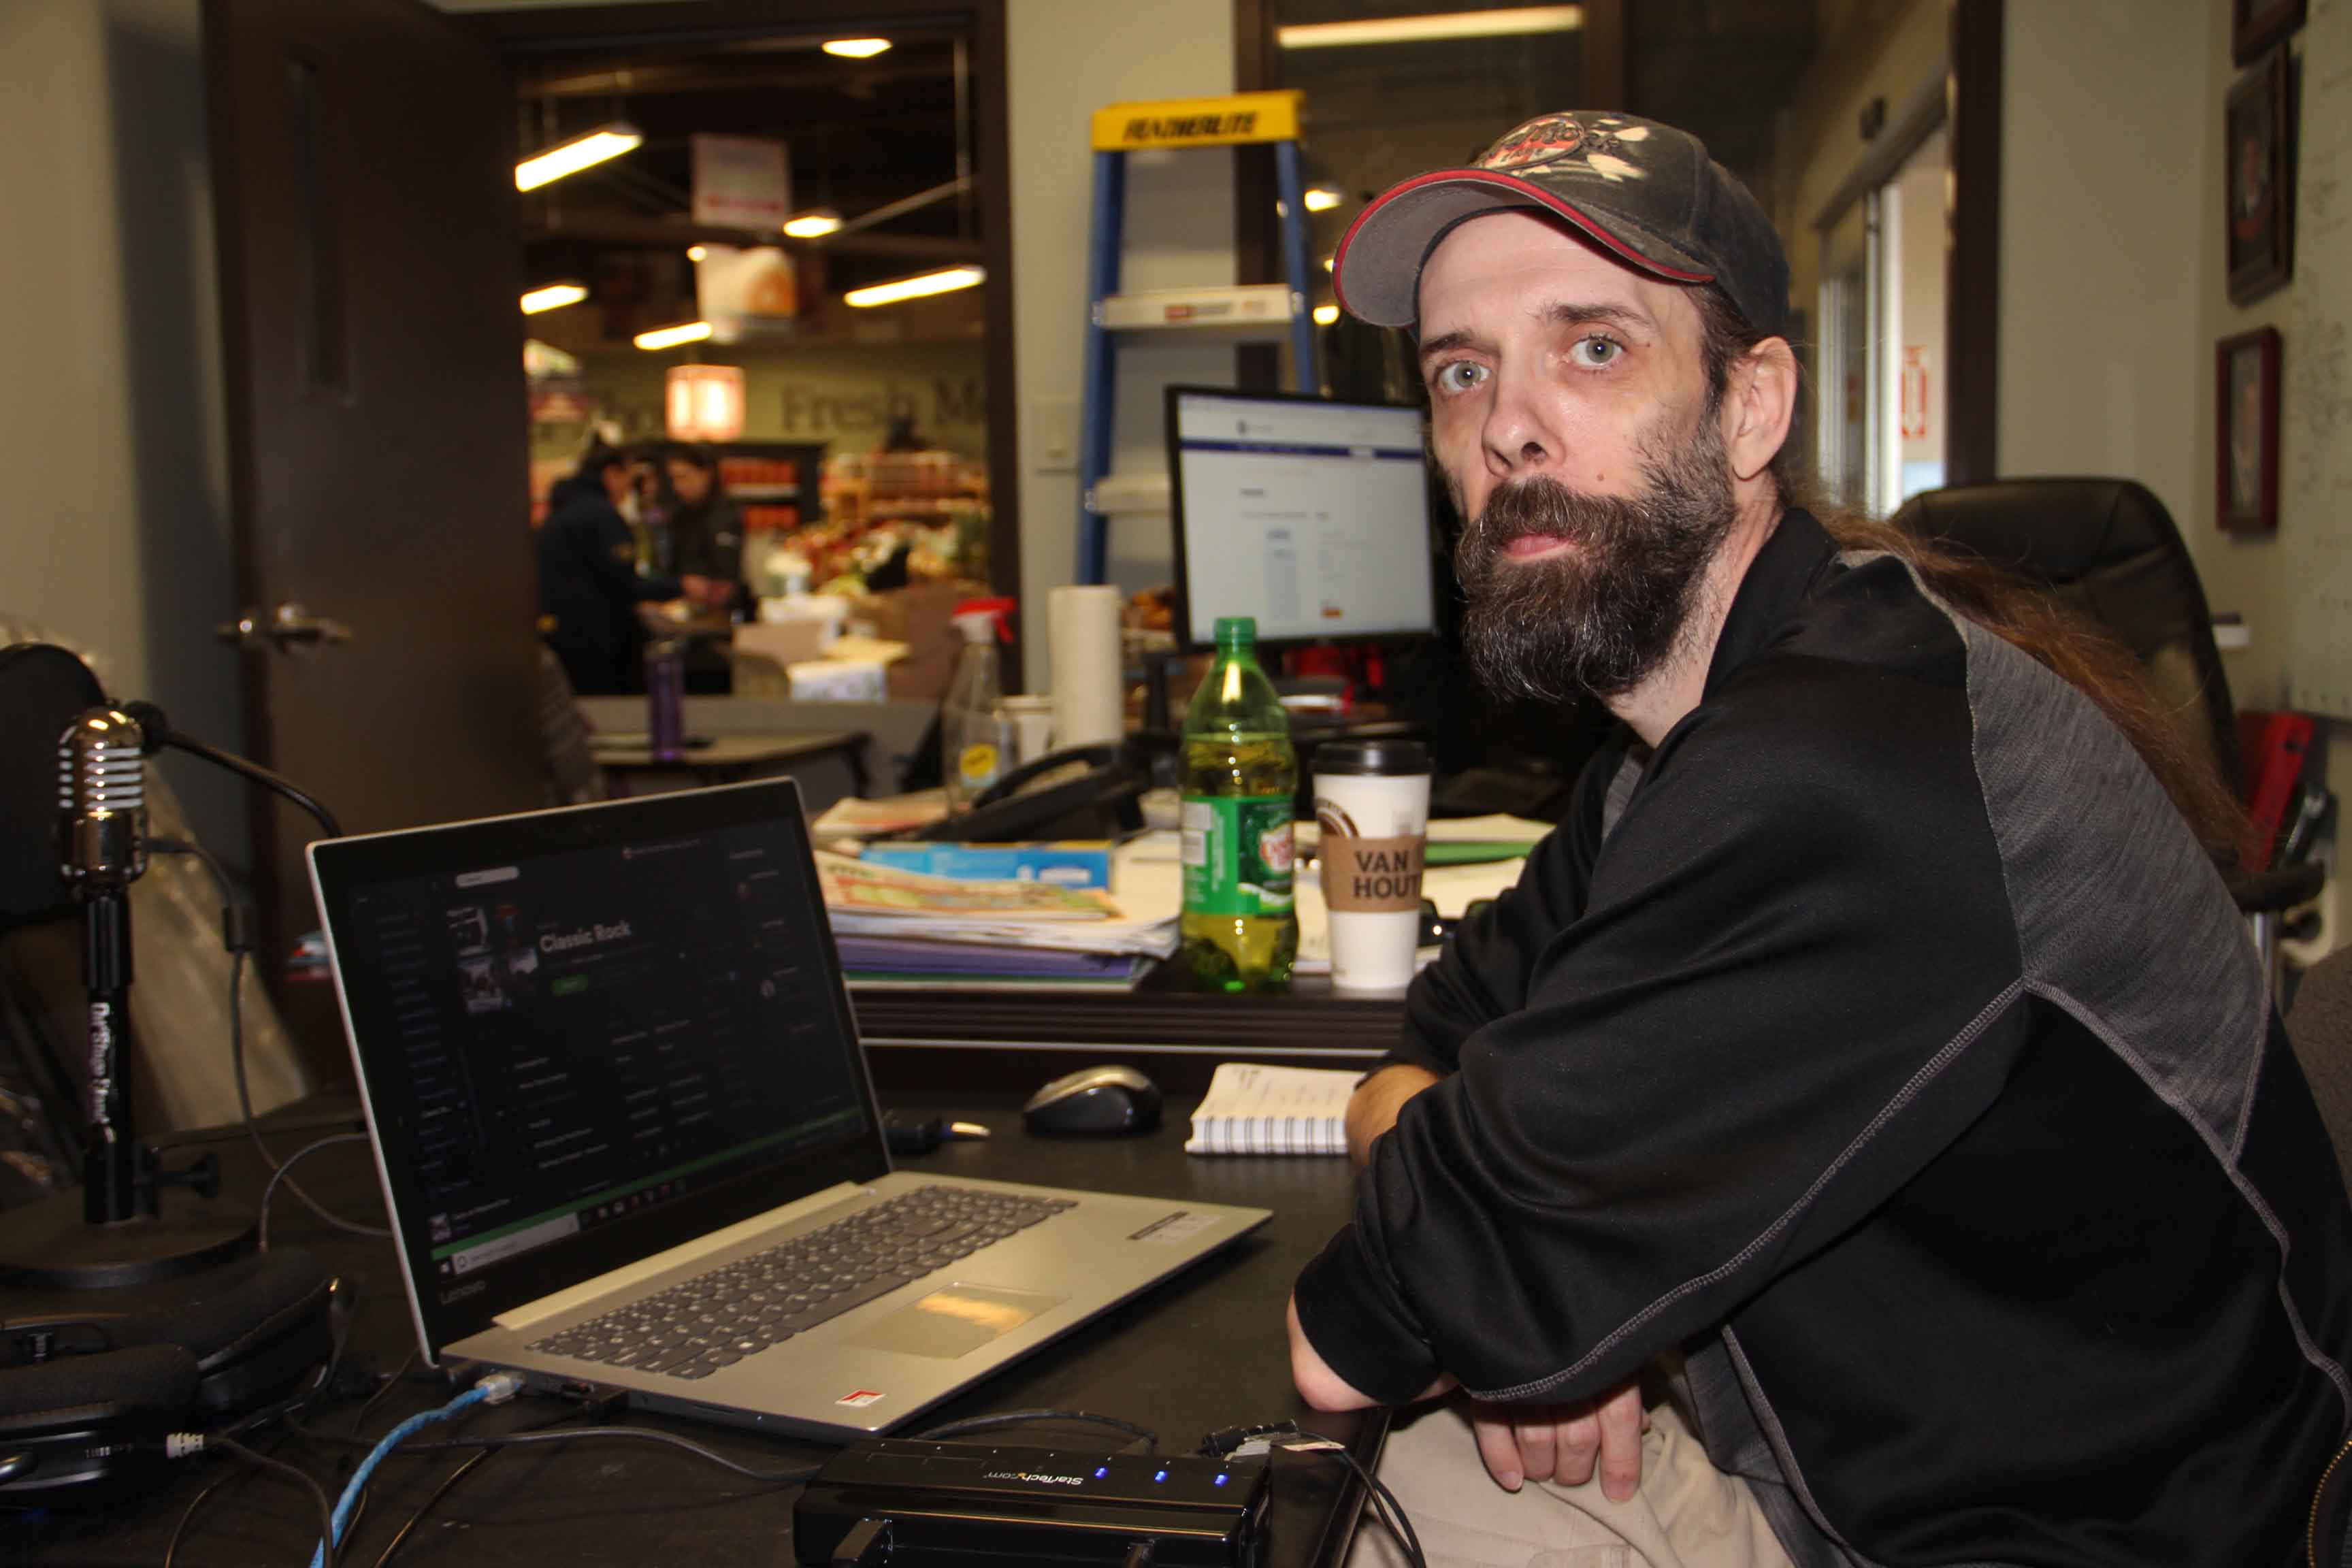 Mark Lundbek, the manager of CKHR, has been remotely overseeing the community radio station from Super A grocery store. The station - located in the Mackenzie Place highrise building - has been largely inaccessible since a March 15 fire damaged the building. Paul Bickford/NNSL photo